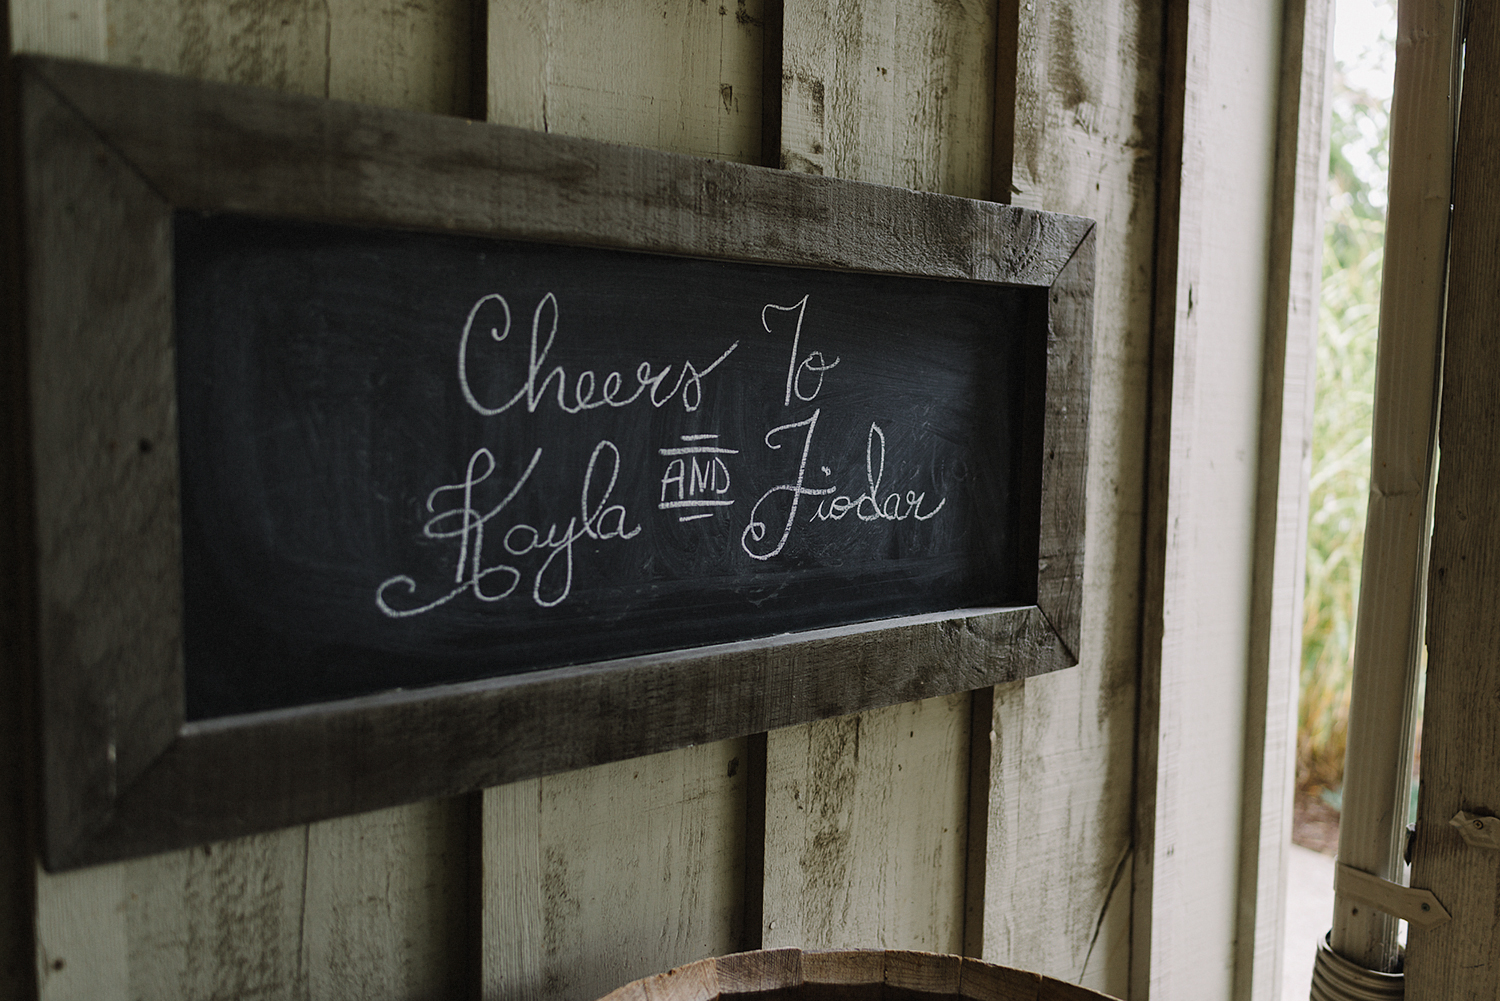 bellamere-winery-cottage-details-rustic-chalk-sign-best-torontos-wedding-photographers-candid-documentary-style-photography-london-ontario-winery-wedding-inspiration.jpg